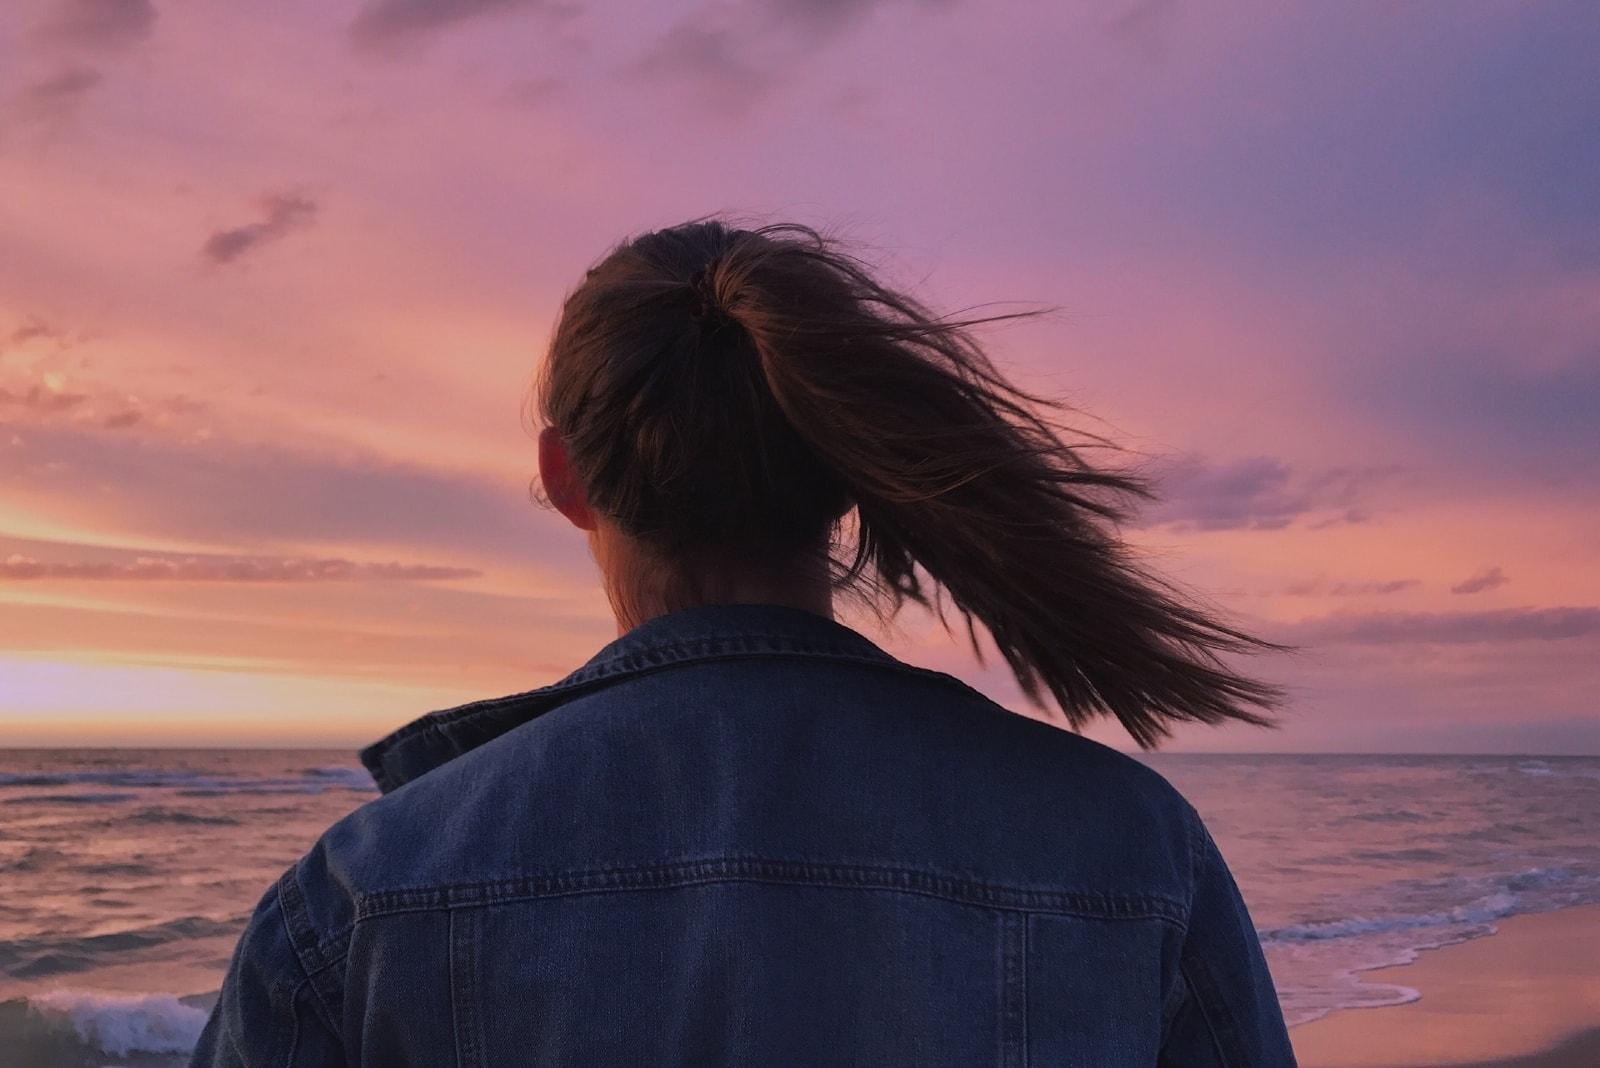 woman in denim jacket looking at sea during sunset